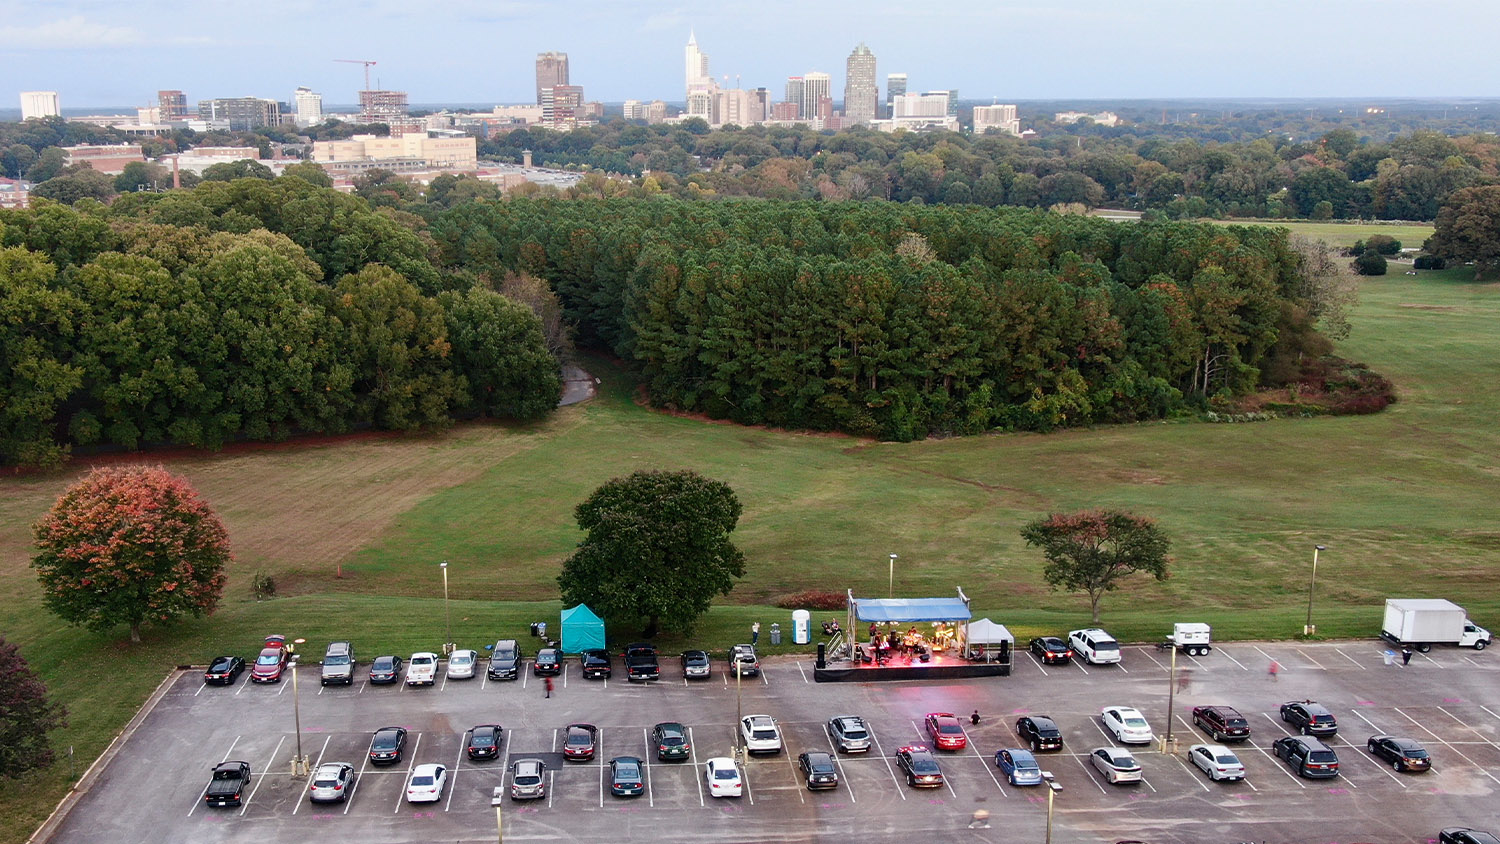 Vehicles in the parking lot on Centennial Campus for the Rissi Palmer drive-in concert this fall